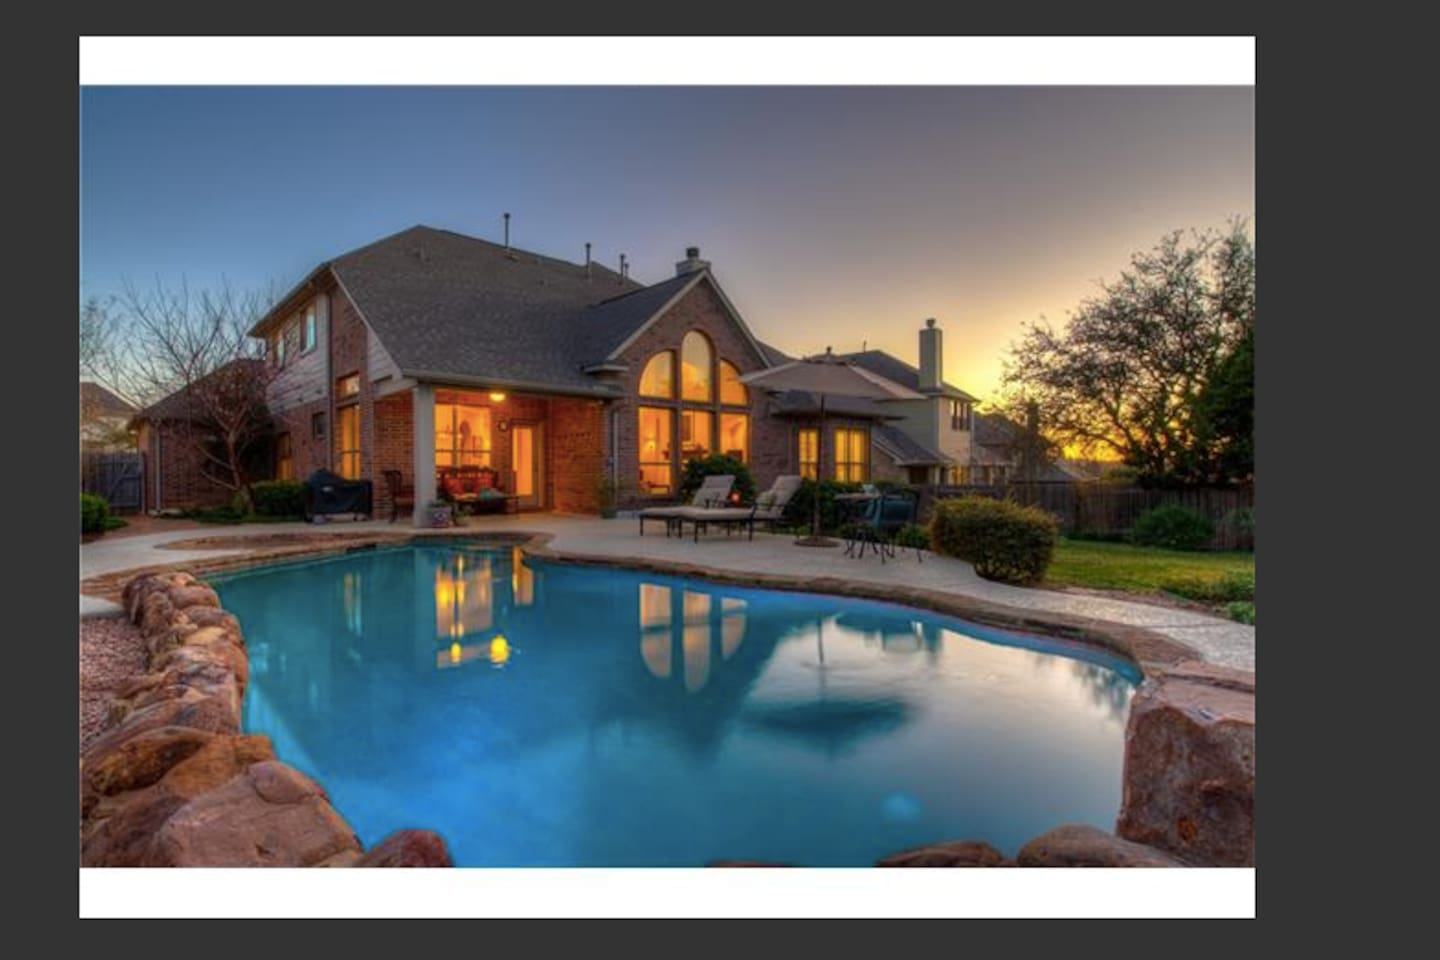 Povate back yard with gorgeous landscaping, large heated pool & spa